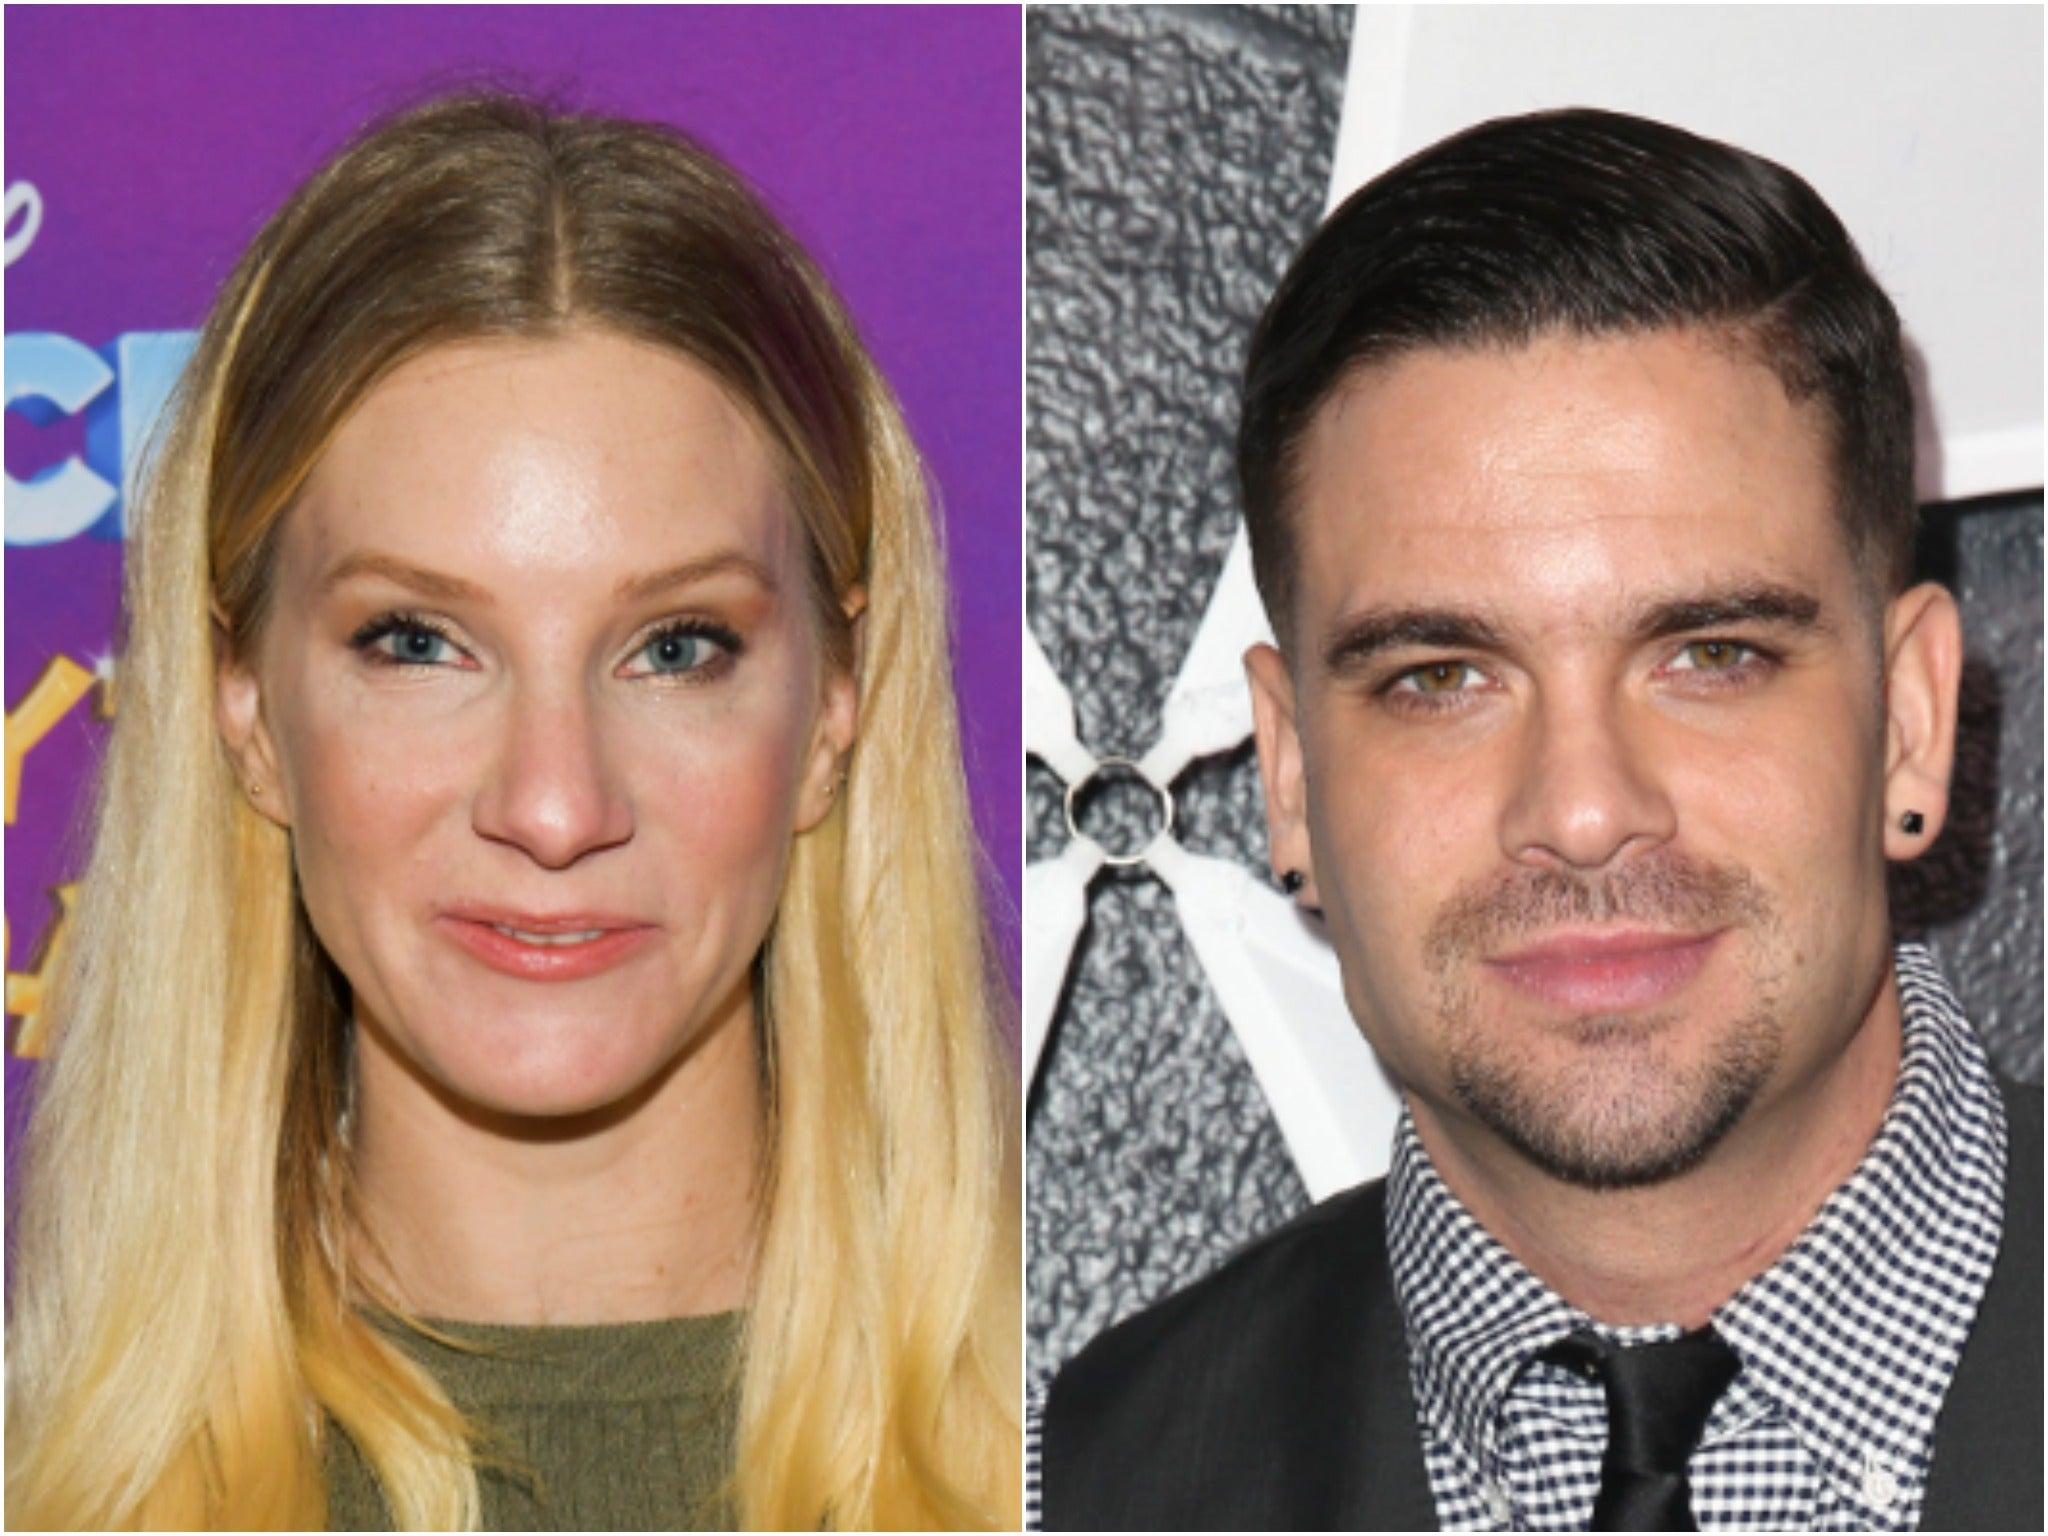 Heather Morris Expresses Regret Over Her Mark Salling Comments 'Triggering' Victims Of Child Abuse